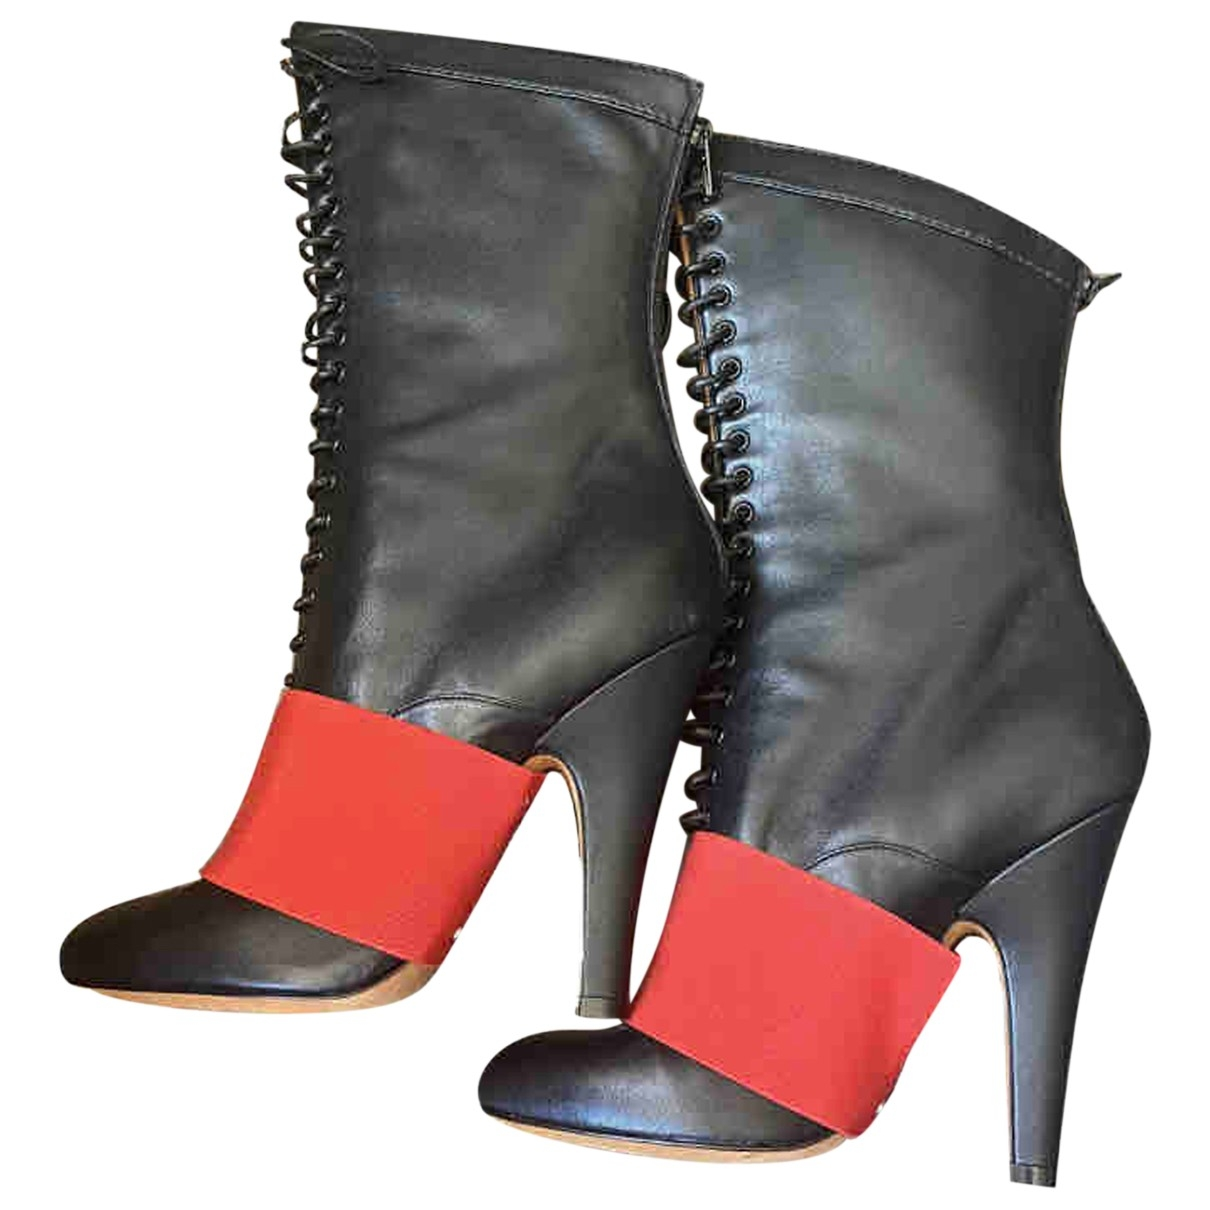 Givenchy \N Black Leather Boots for Women 37 EU